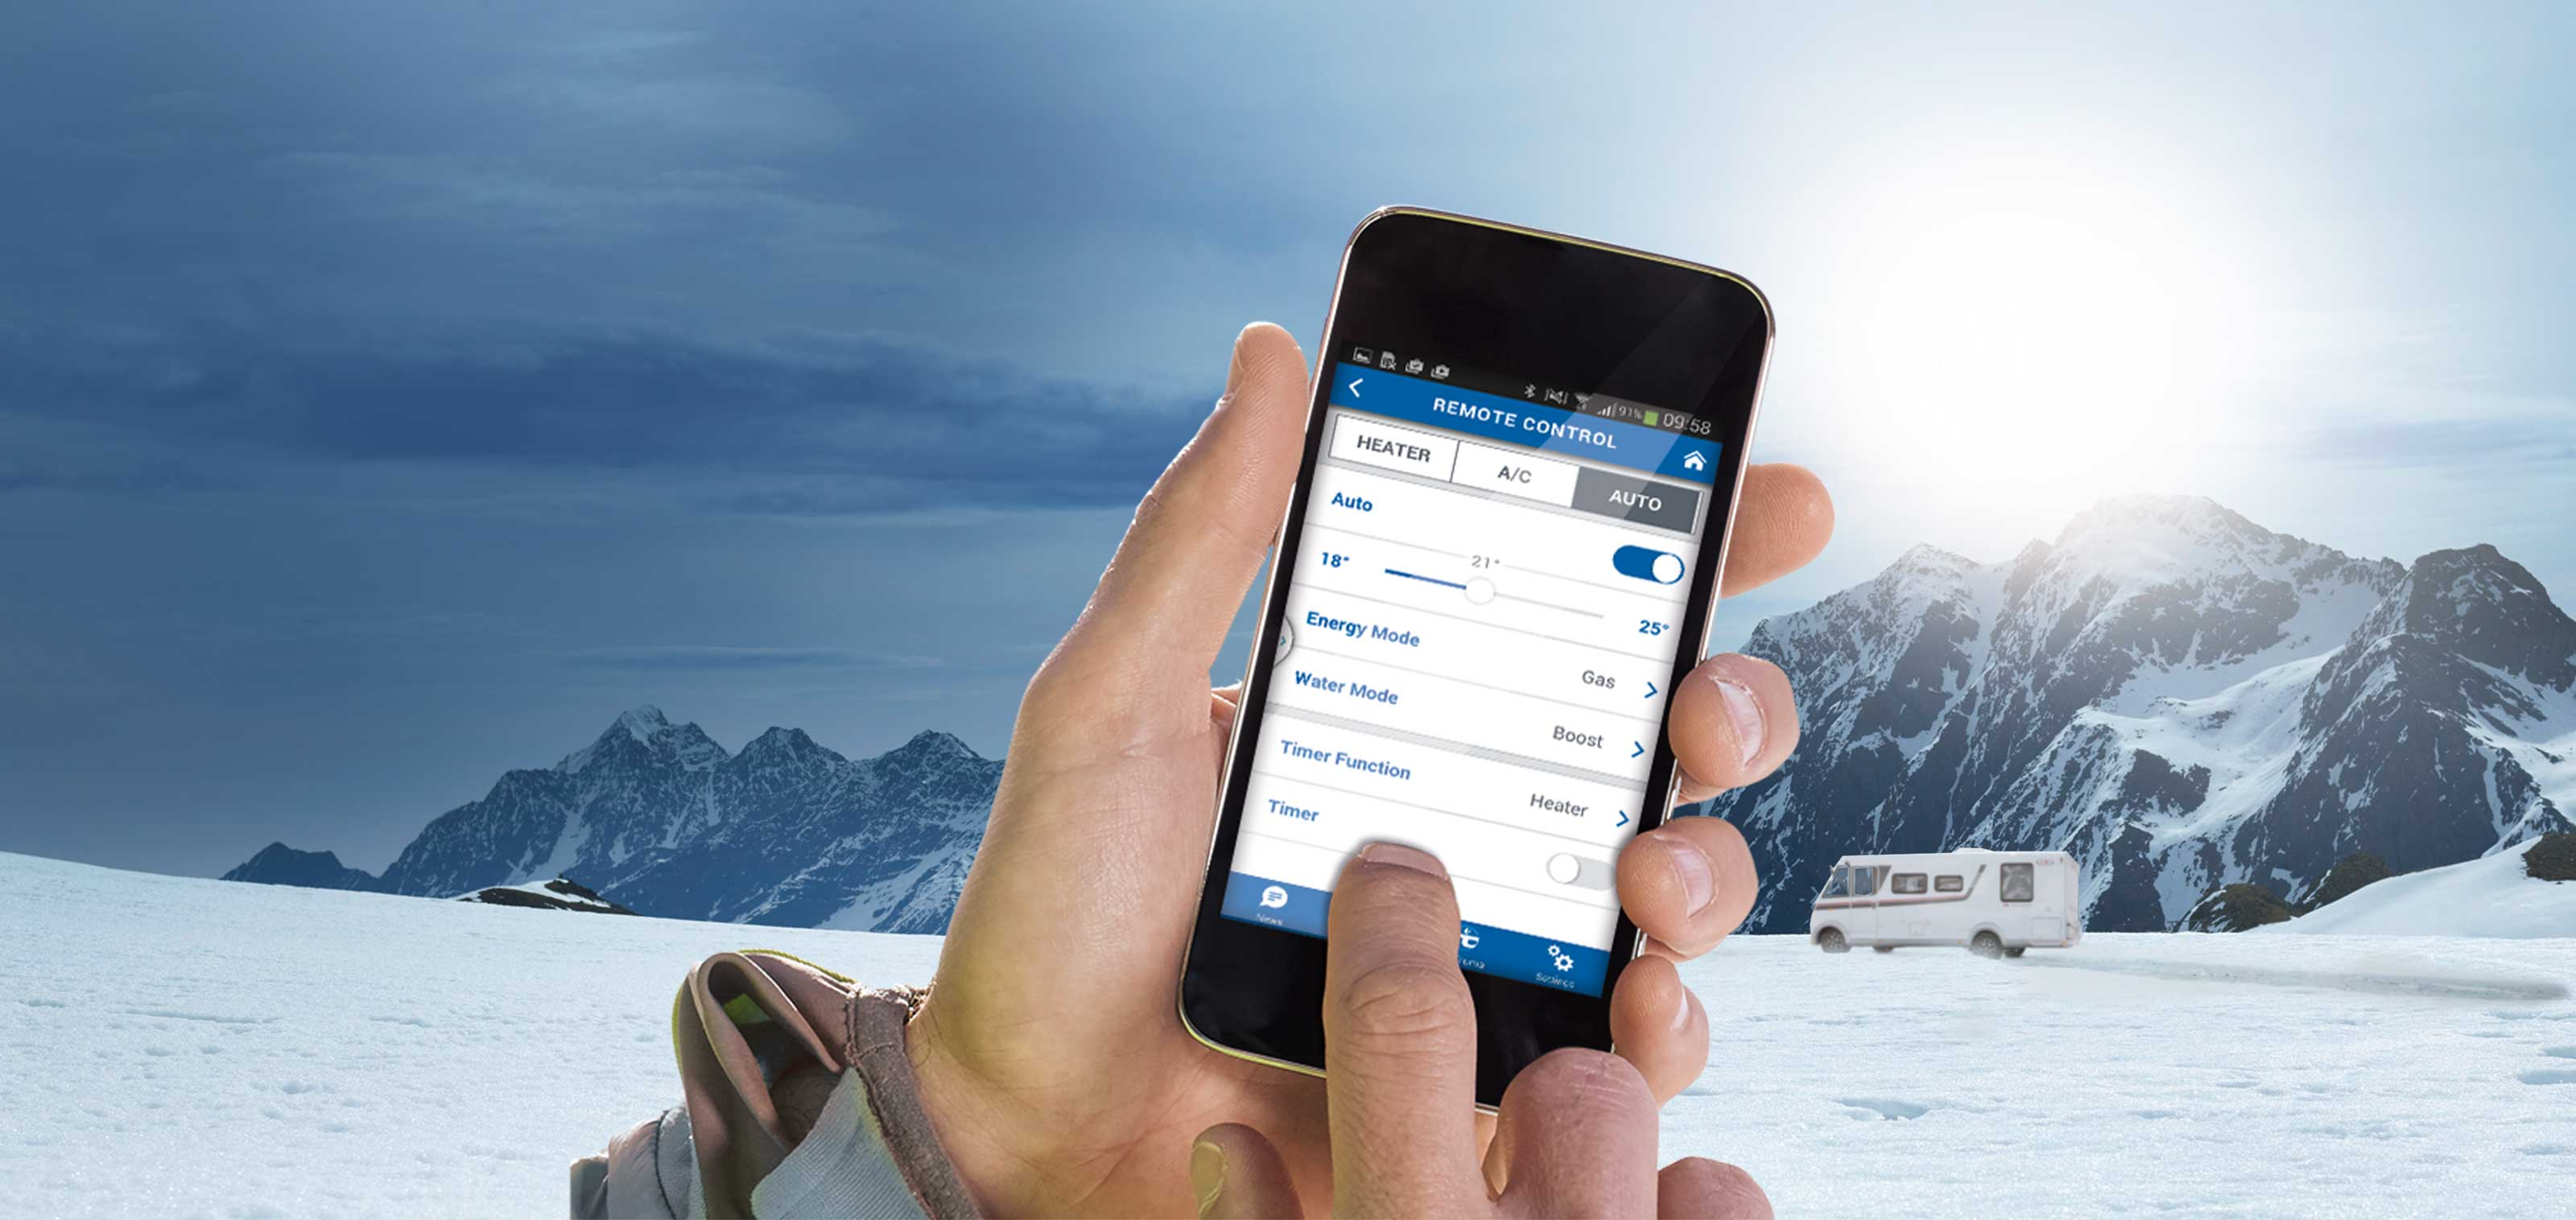 Truma App on a smartphone in front of winter landscape